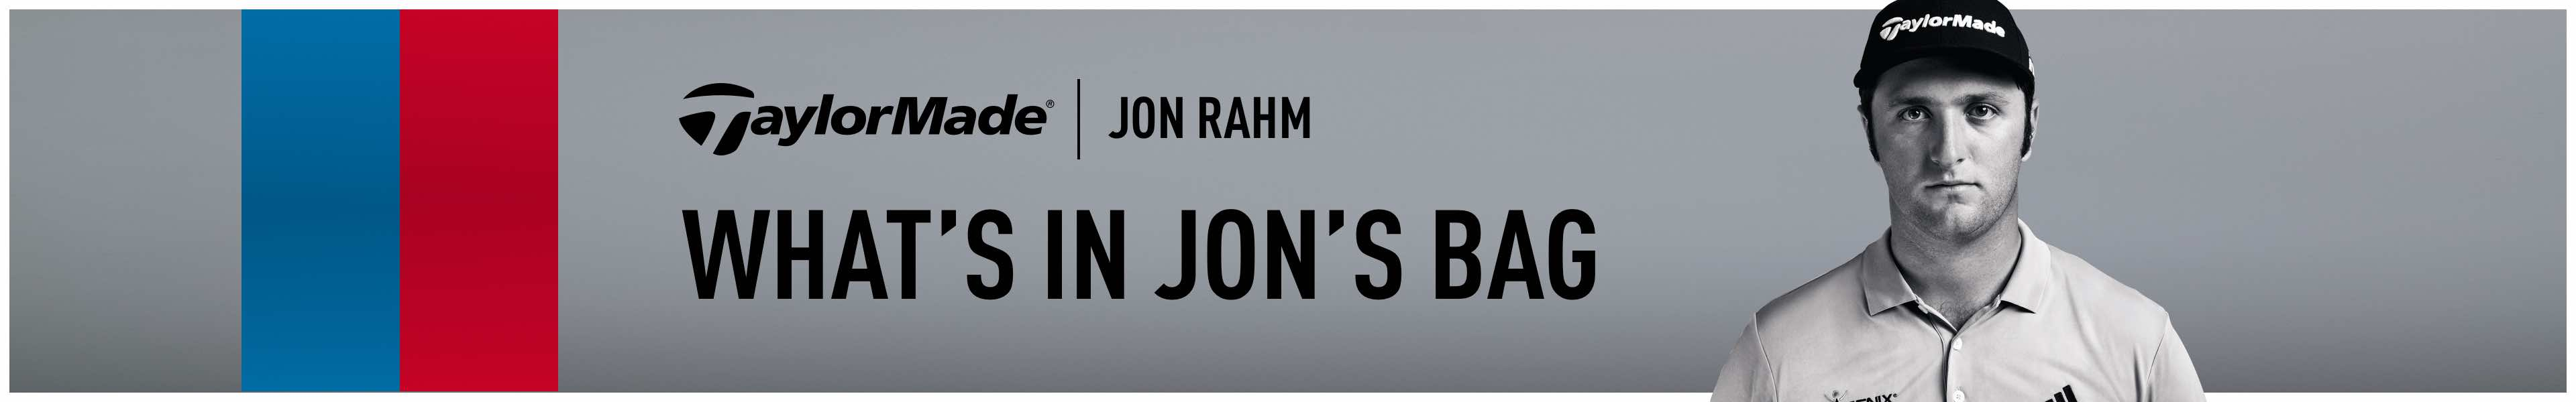 Jon Rahm's Bag